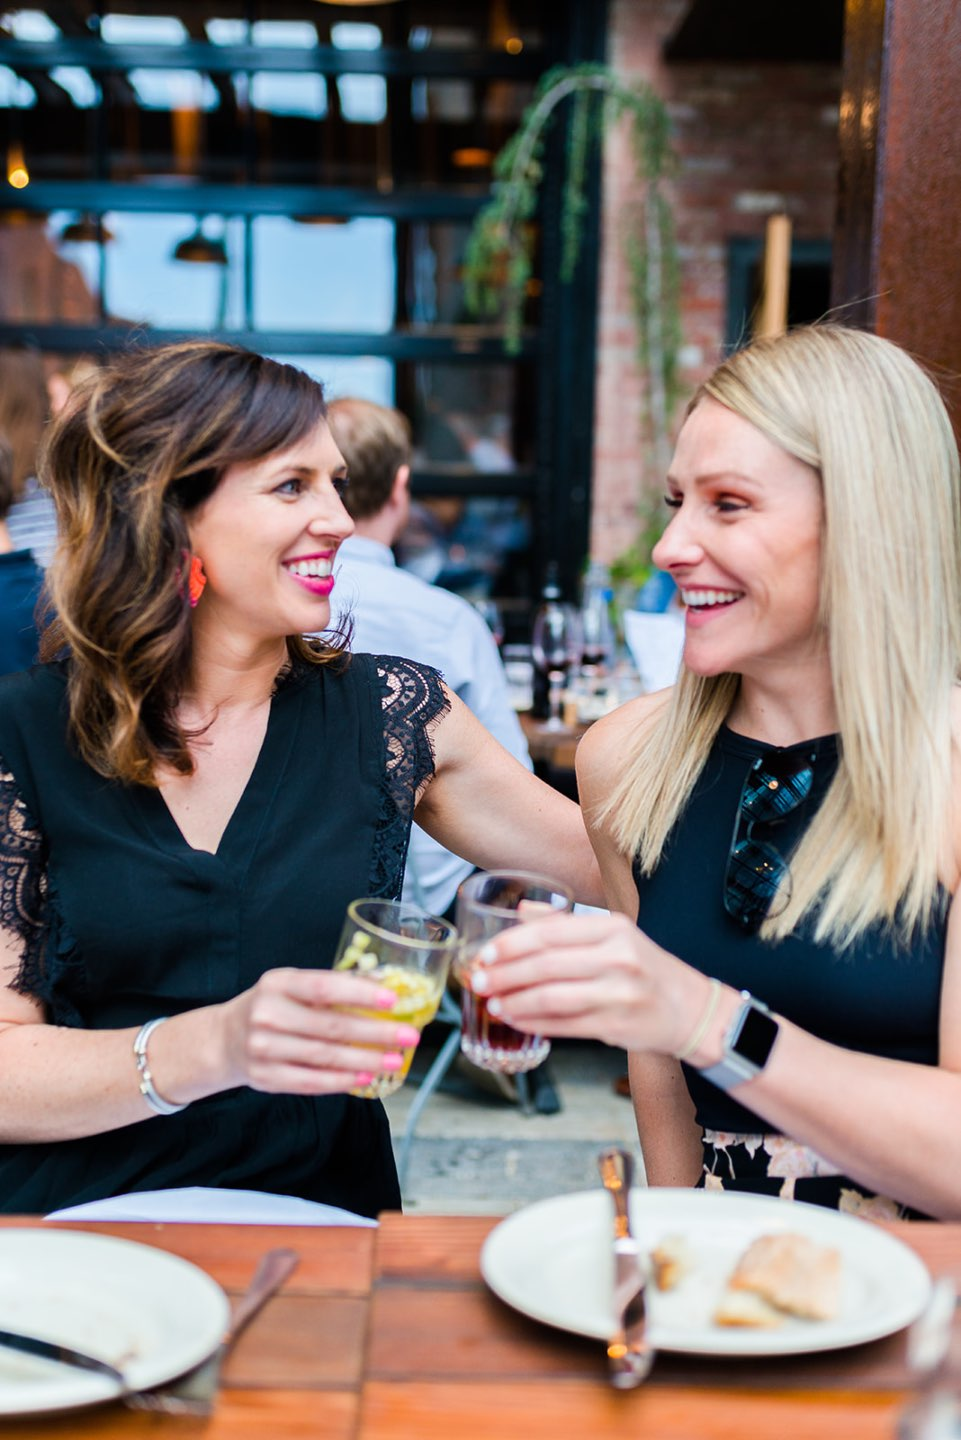 16 Can't-Miss Patios in Raleigh - I'm Fixin' To - @mbg0112   Best spots for patio dining in downtown Raleigh featured by top North Carolina blog, I'm Fixin' To: Barcelona Wine Bar